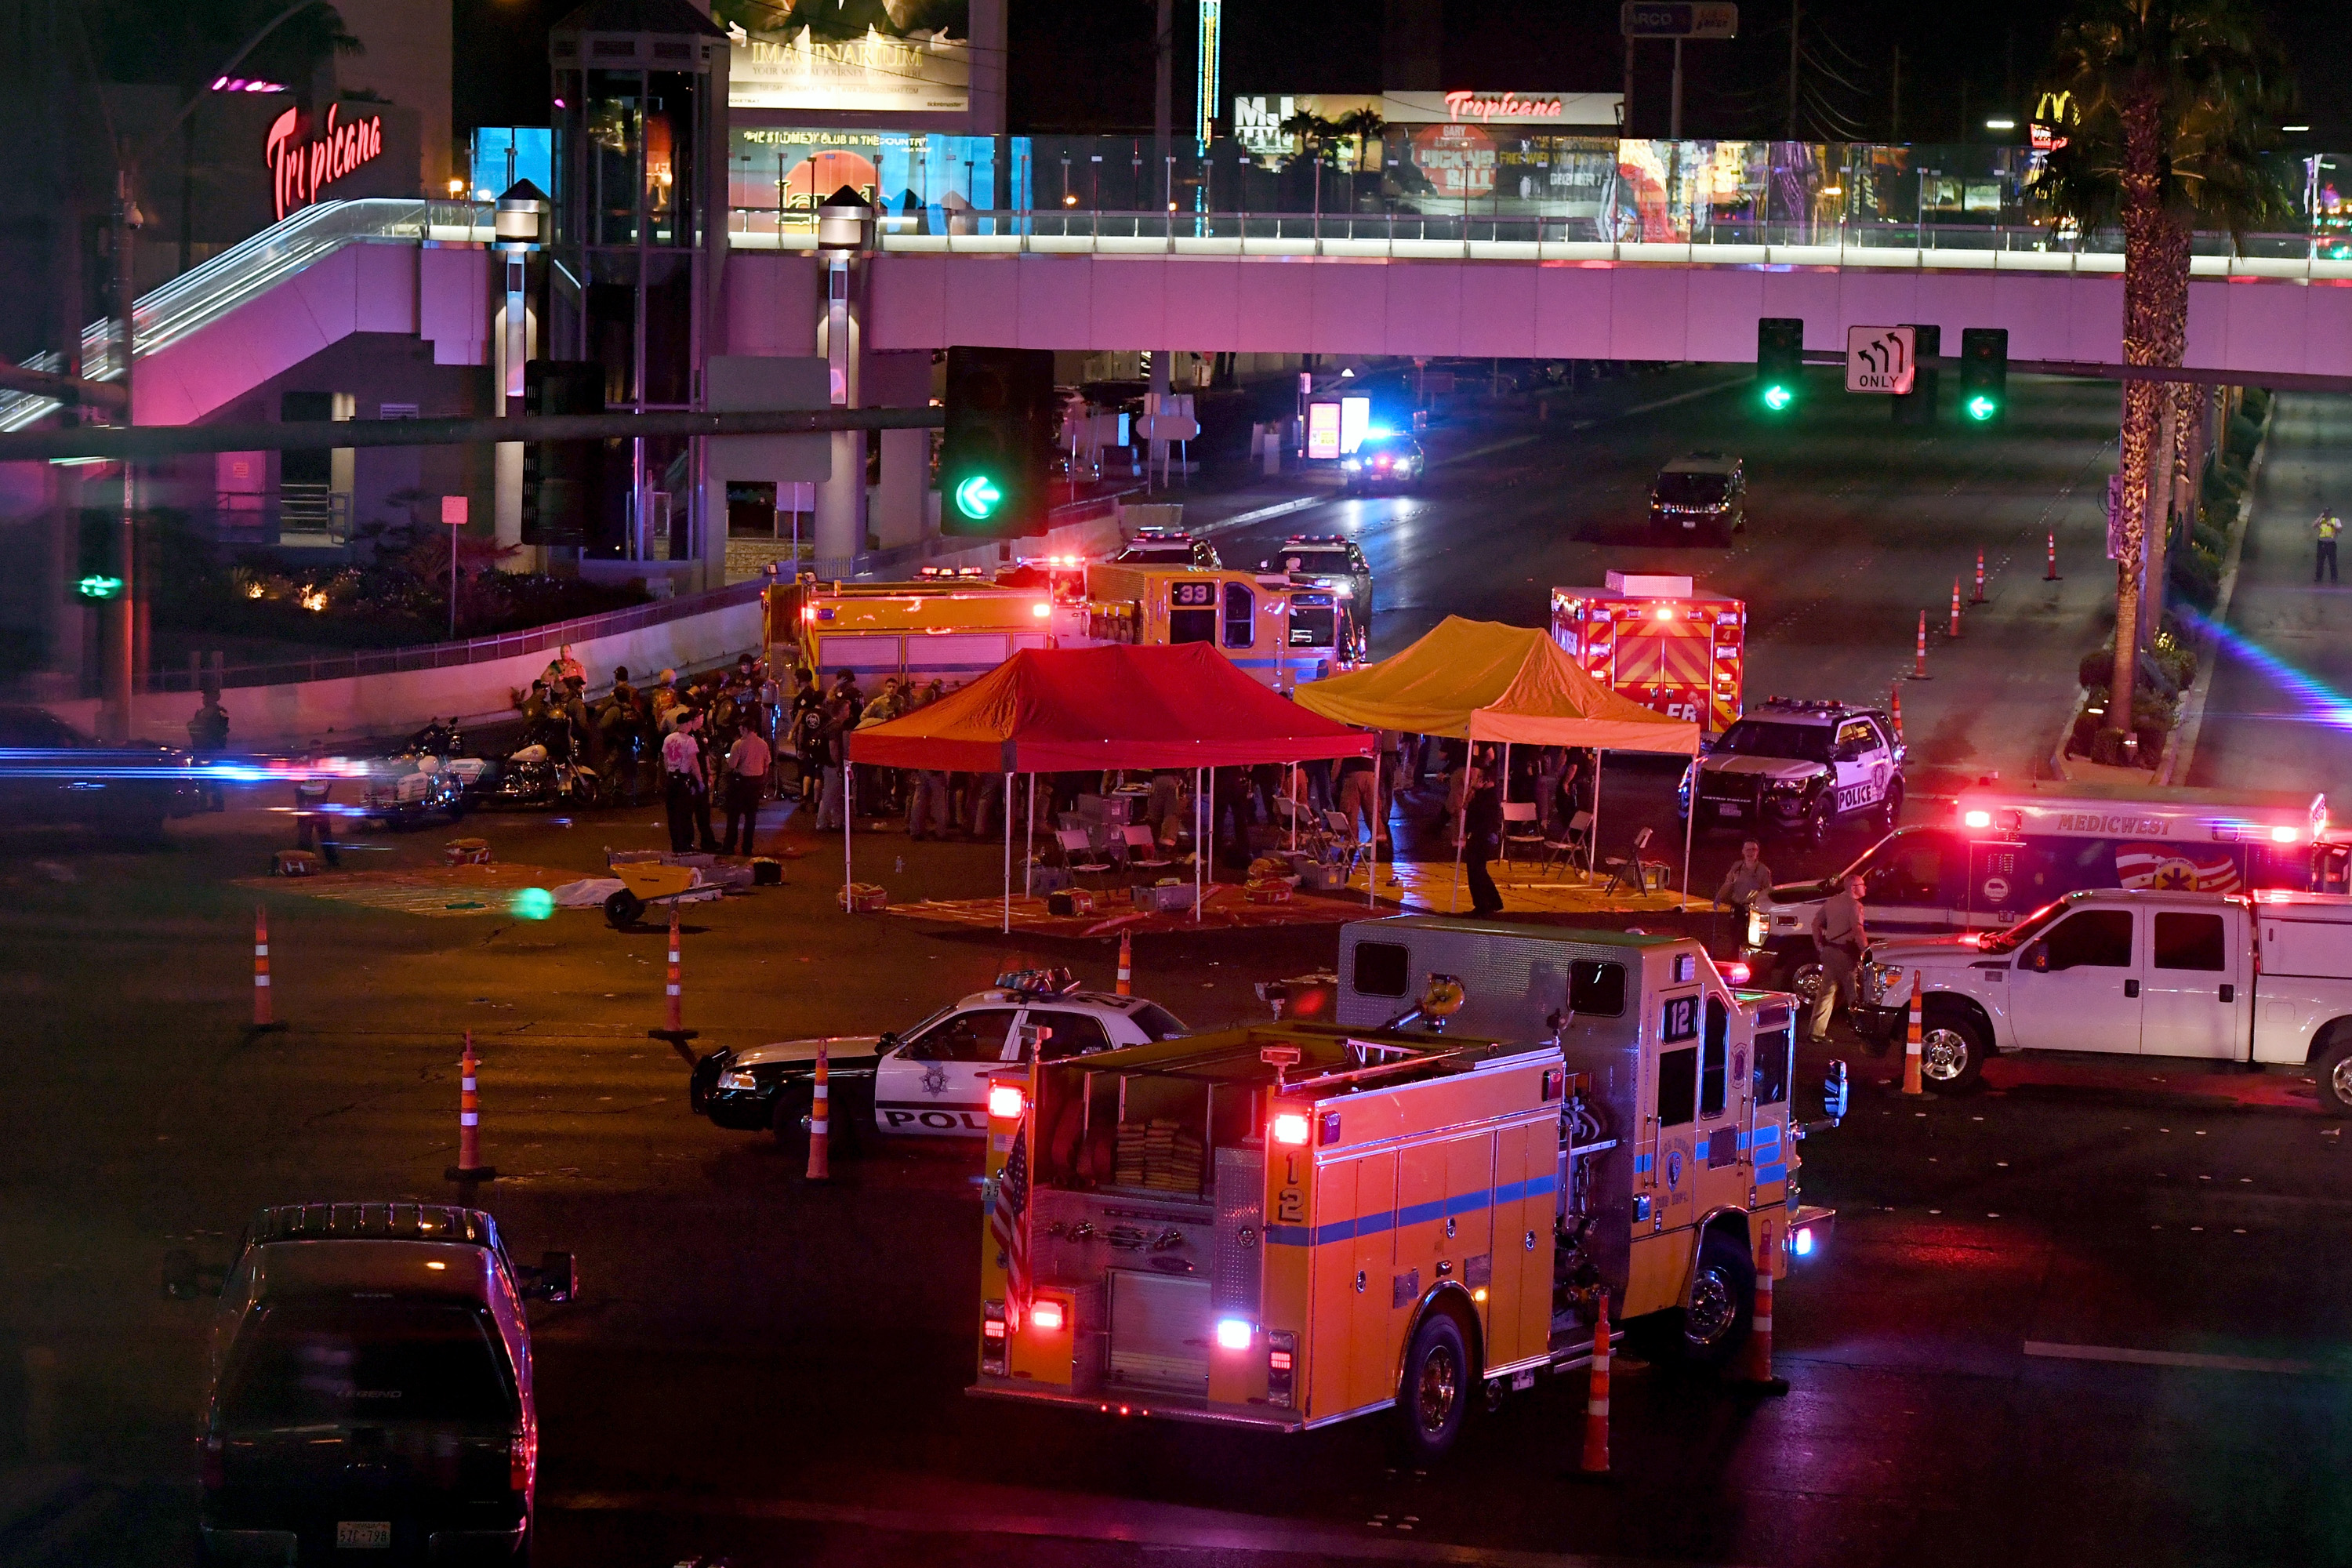 Police and rescue personnel gather at the intersection of Las Vegas Boulevard and Tropicana Ave. after a mass shooting at a country music festival nearby on Oct. 2, 2017 in Las Vegas, Nevada